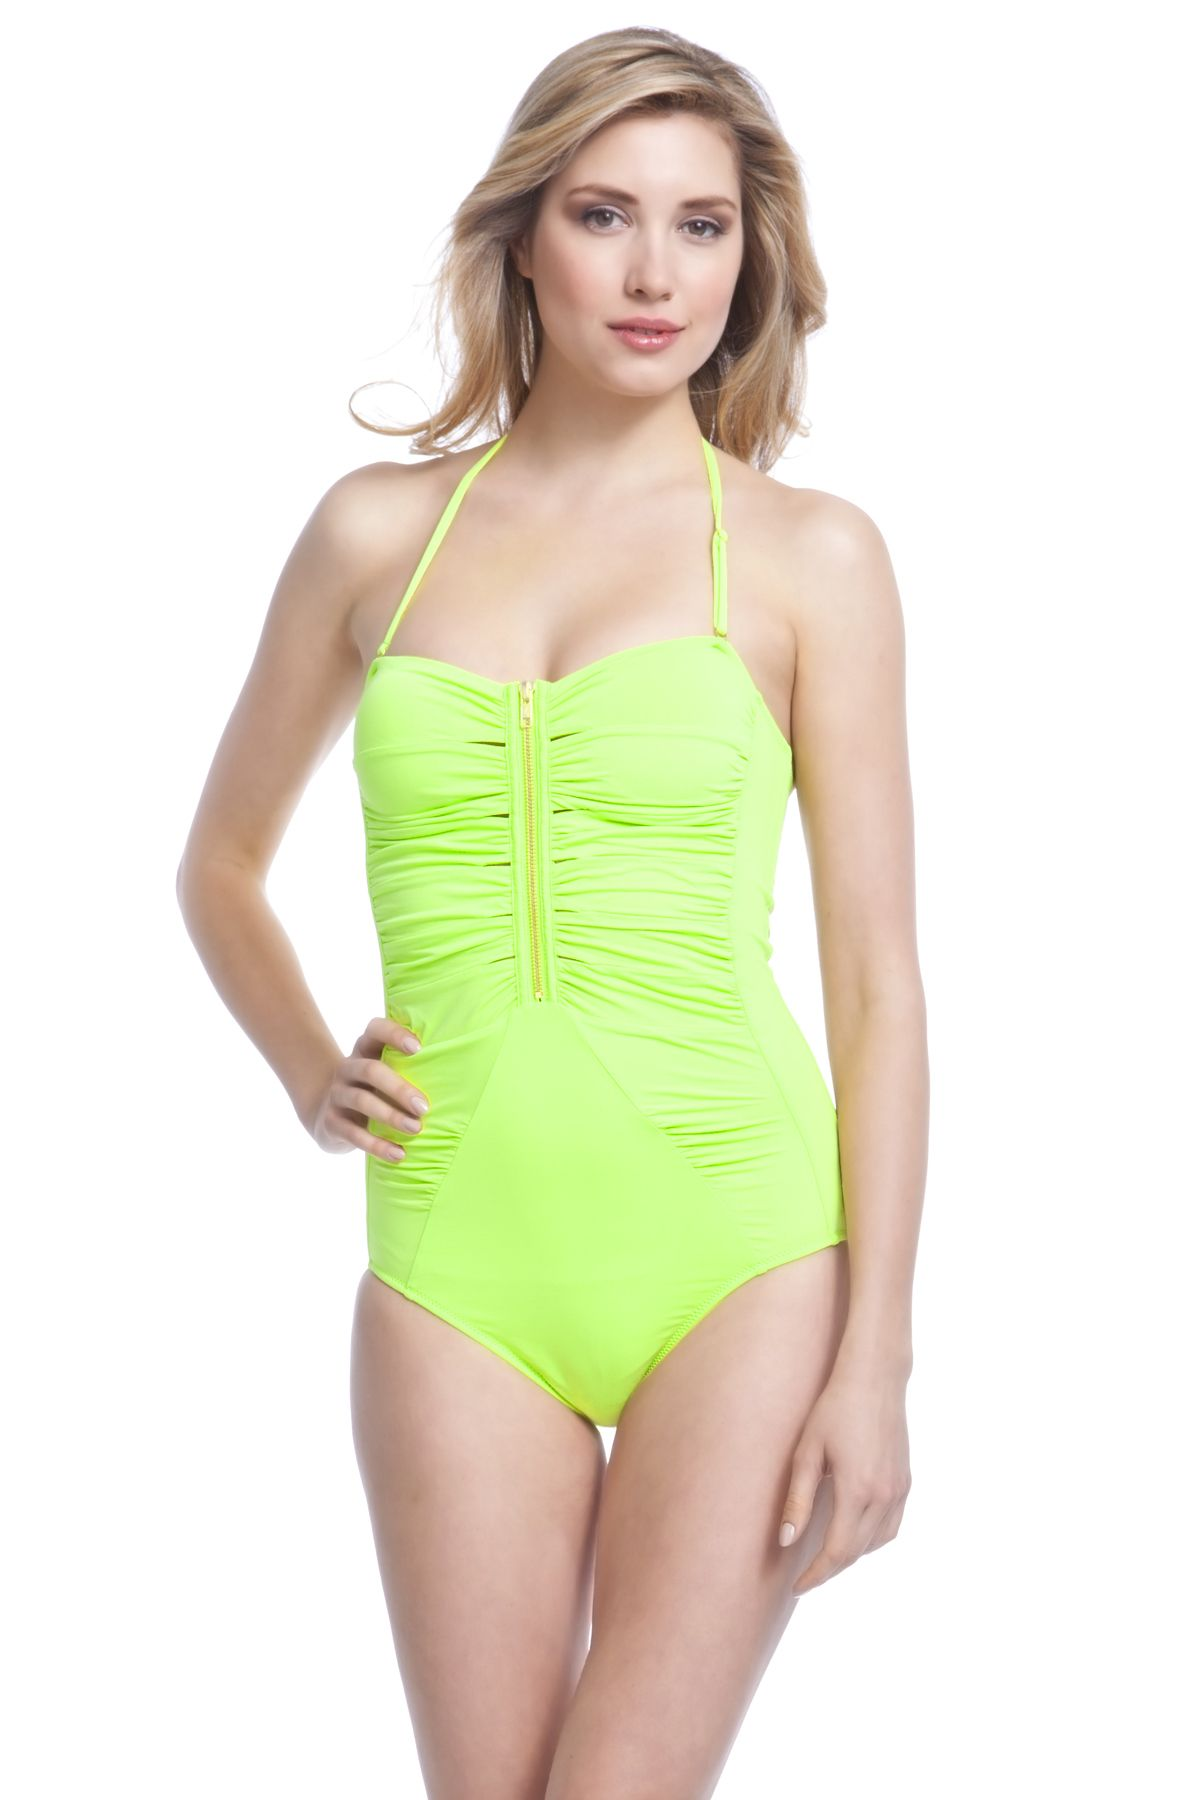 online here diversified latest designs fashion Fascinating One Piece Swimsuits for Juniors : Modest Juniors ...